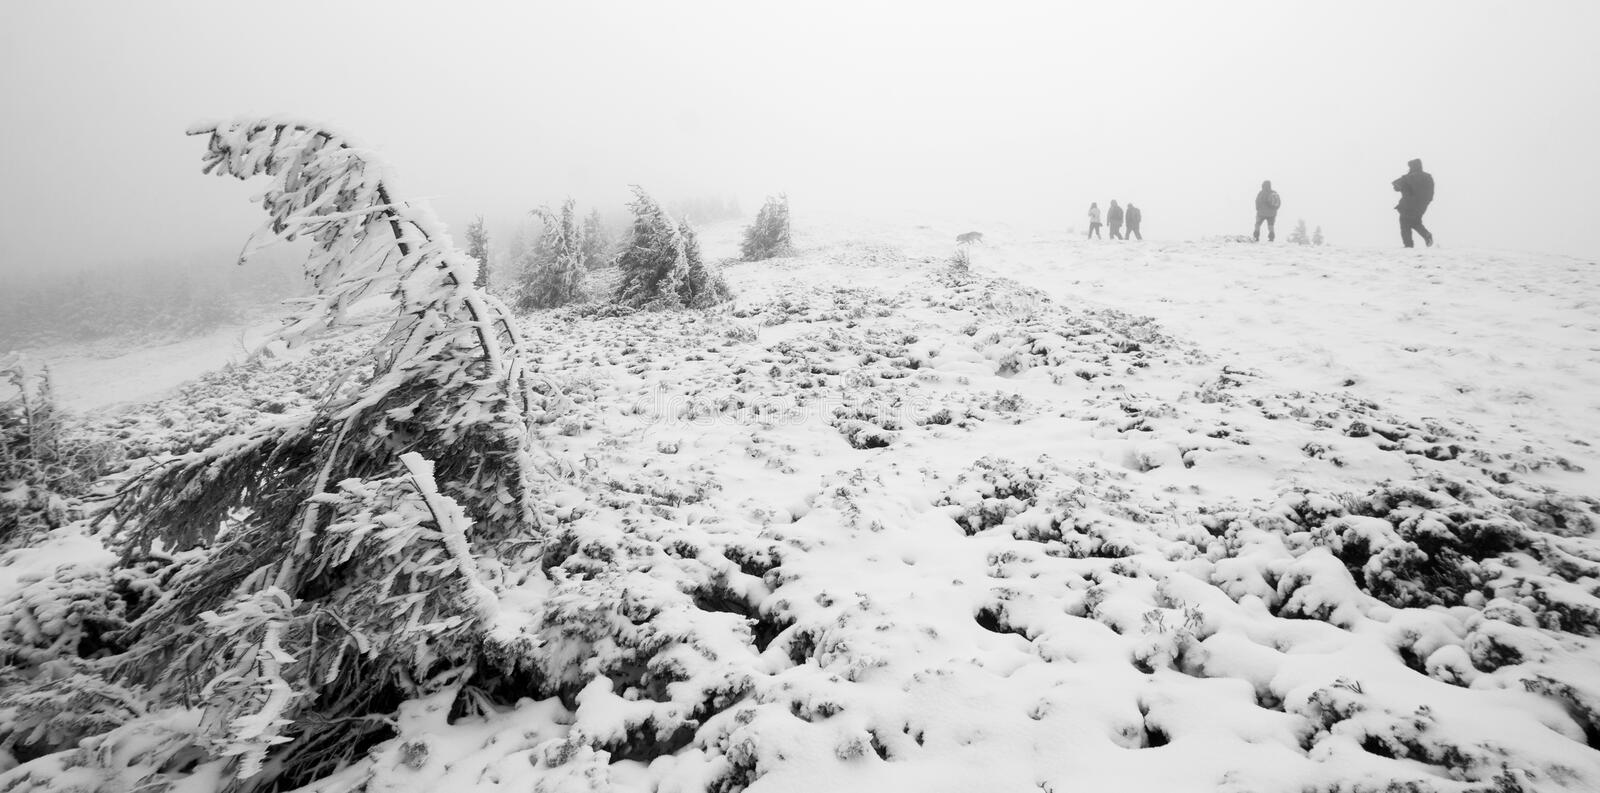 Group of people trekking in foggy winter landscape royalty free stock photos